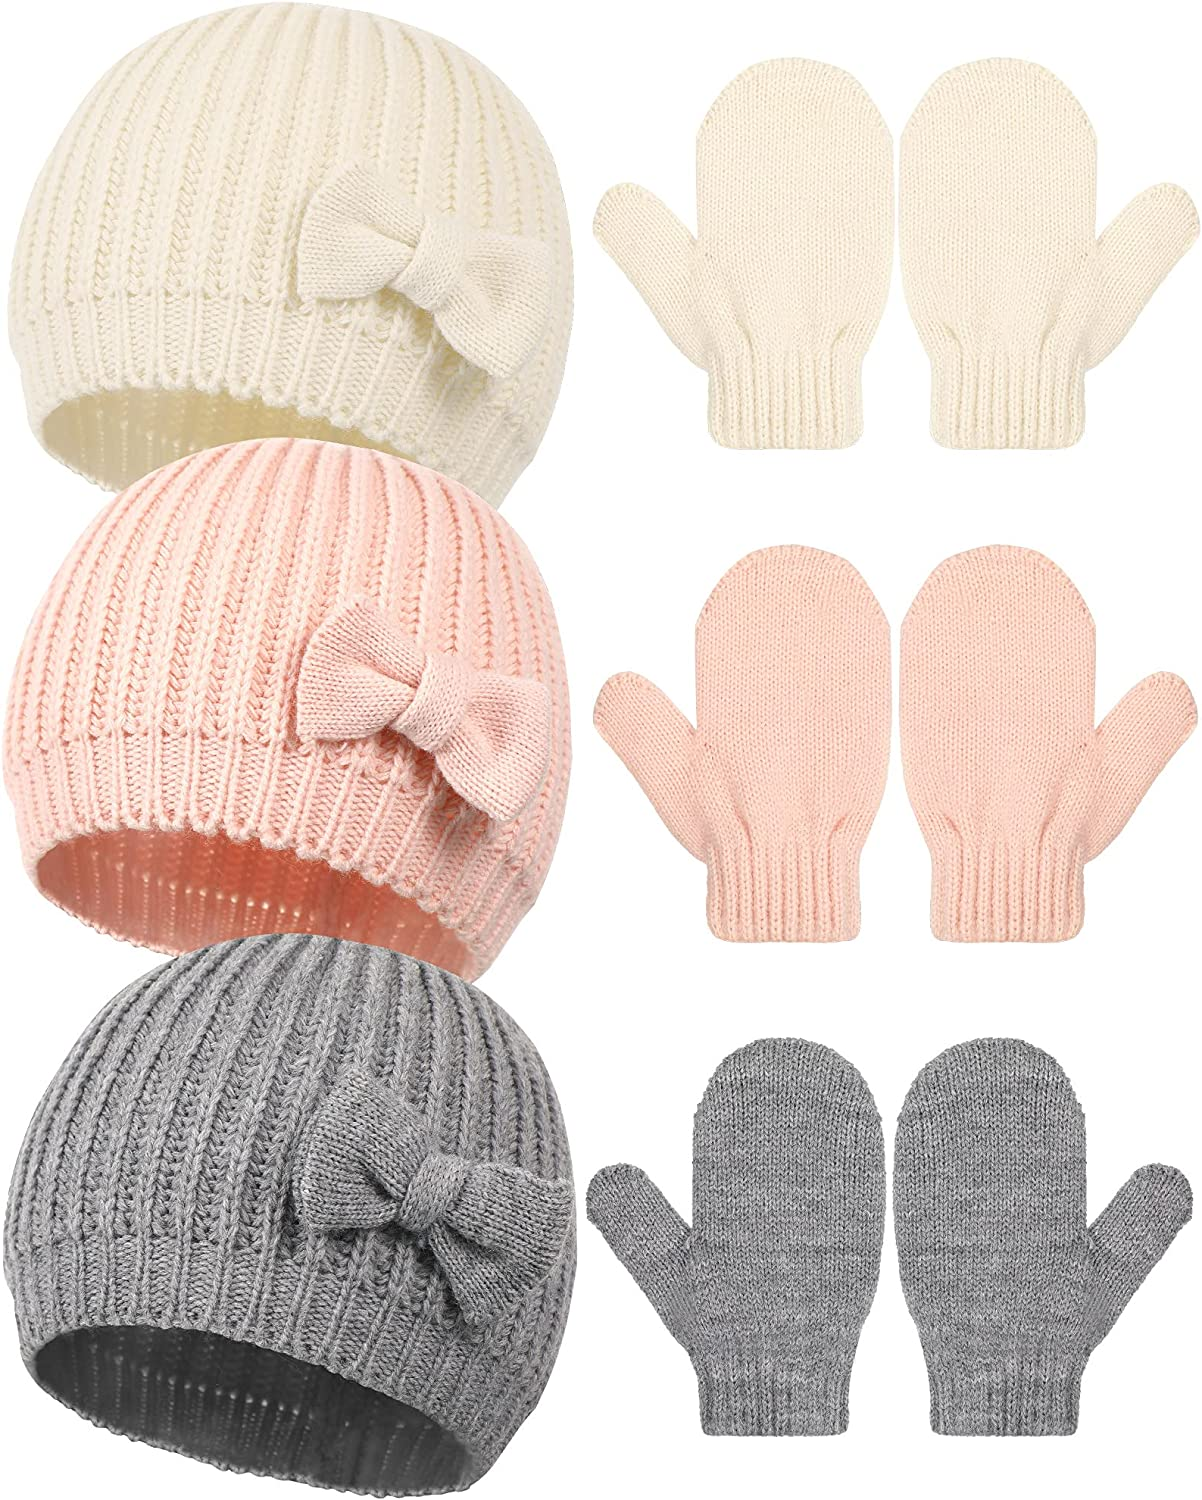 3 Sets Baby Beanies Gloves Soft Lining Cable Knit Winter Caps Cute Bow Beanie Winter Warm Knitted Gloves Infant Toddler Mitten for Baby Girls Boys